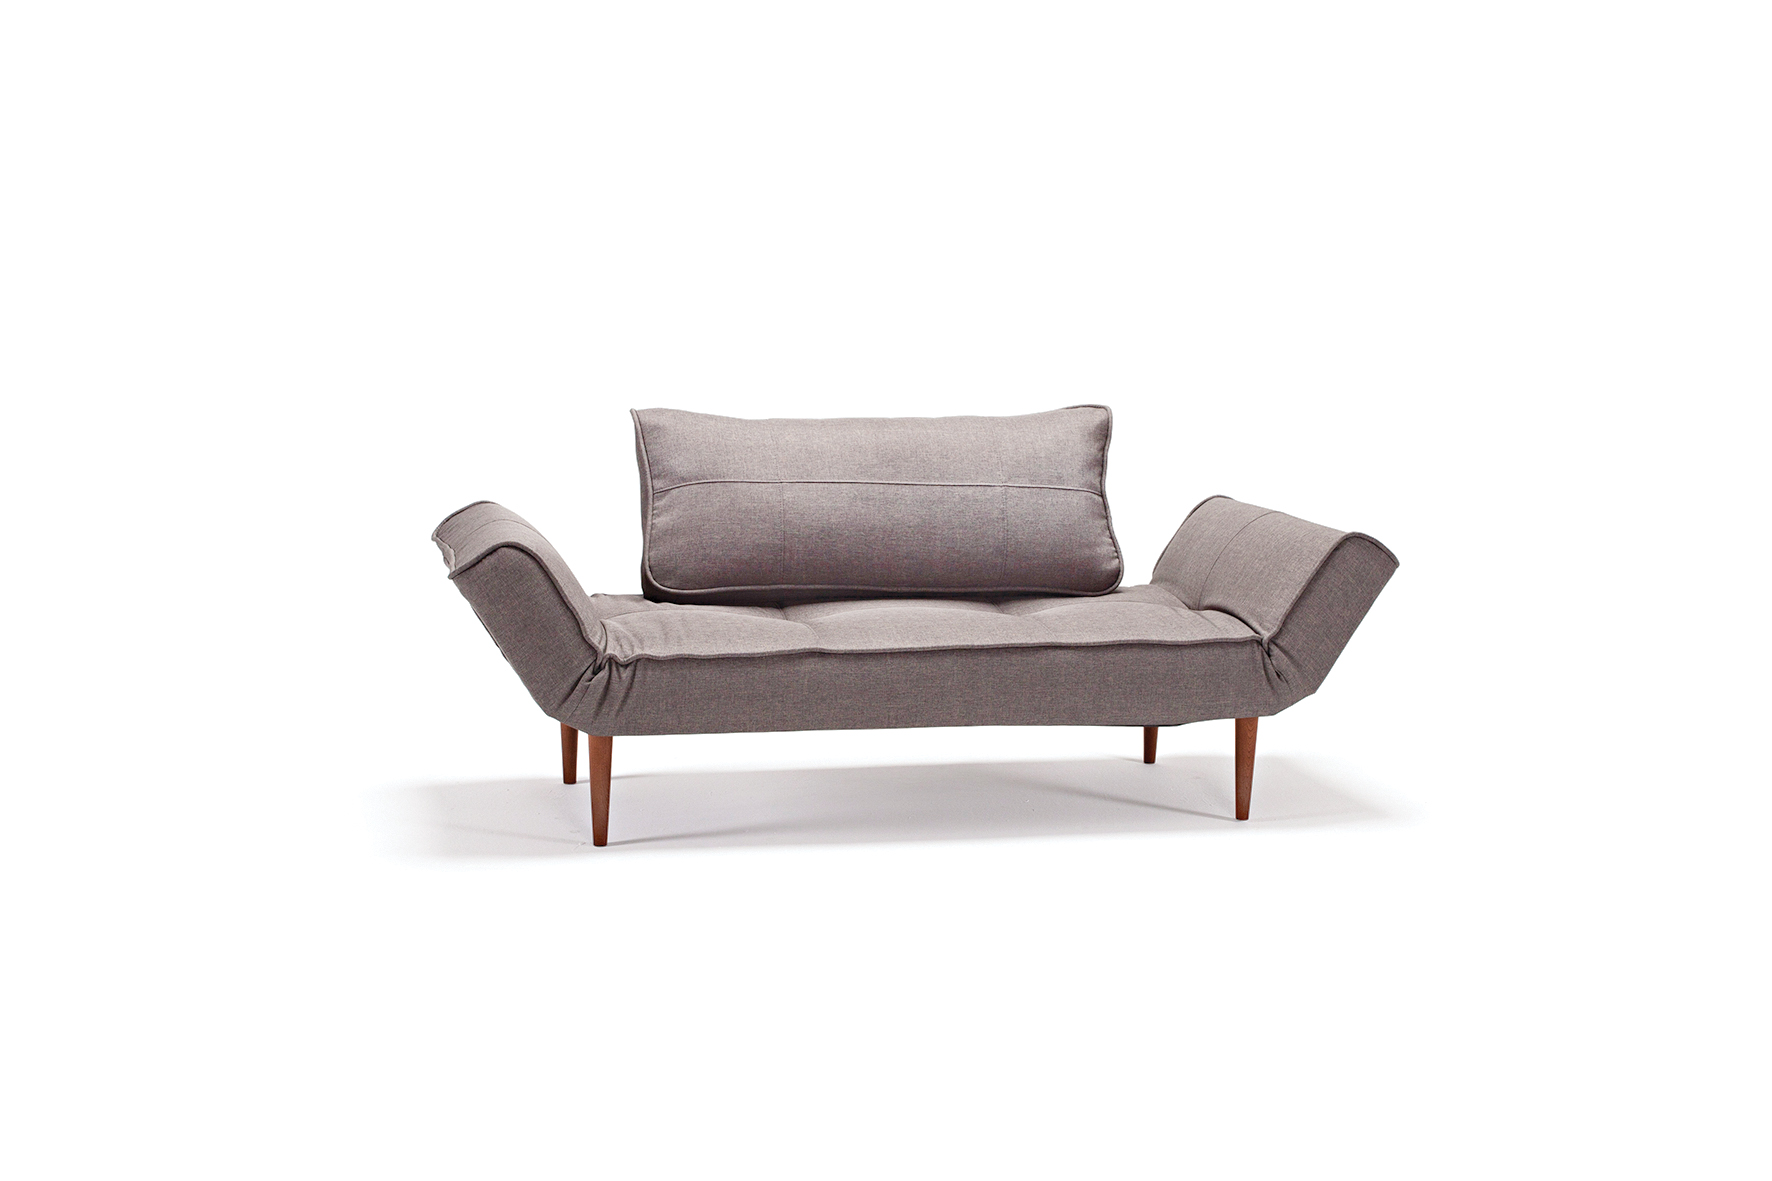 Zeal sofa bed innovation living australia for Sofa bed australia